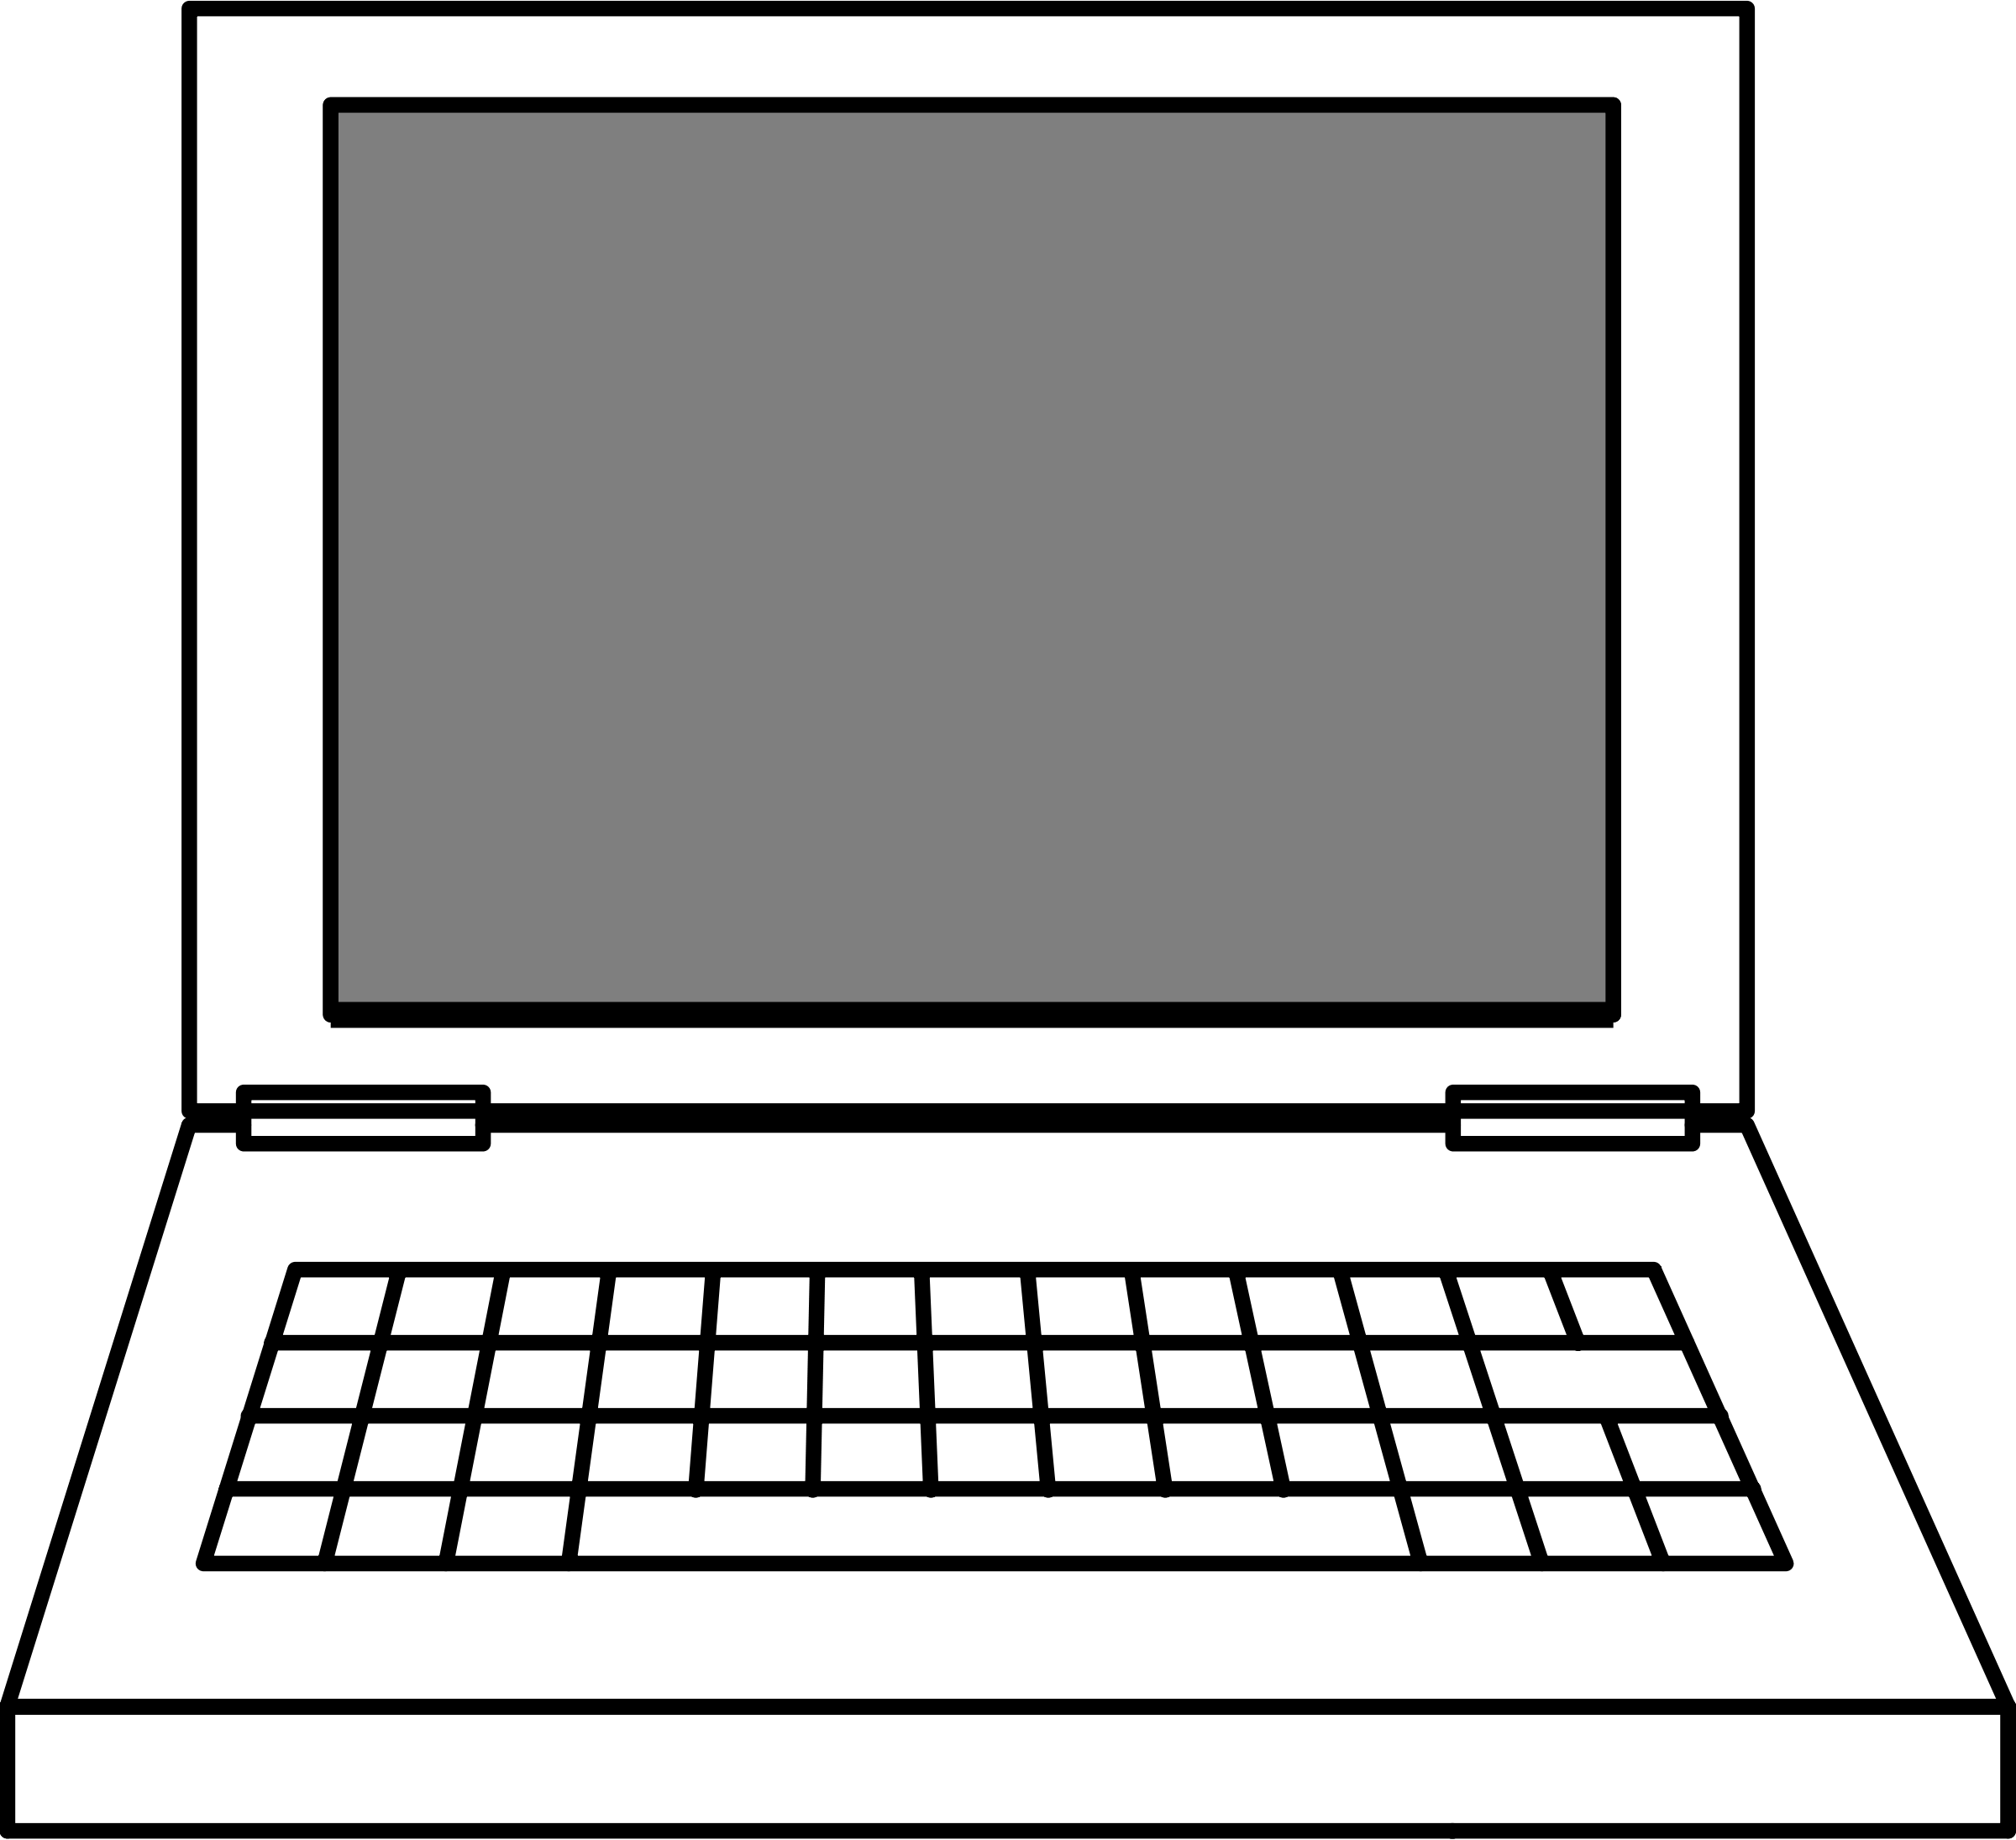 Class clipart computer, Class computer Transparent FREE for.